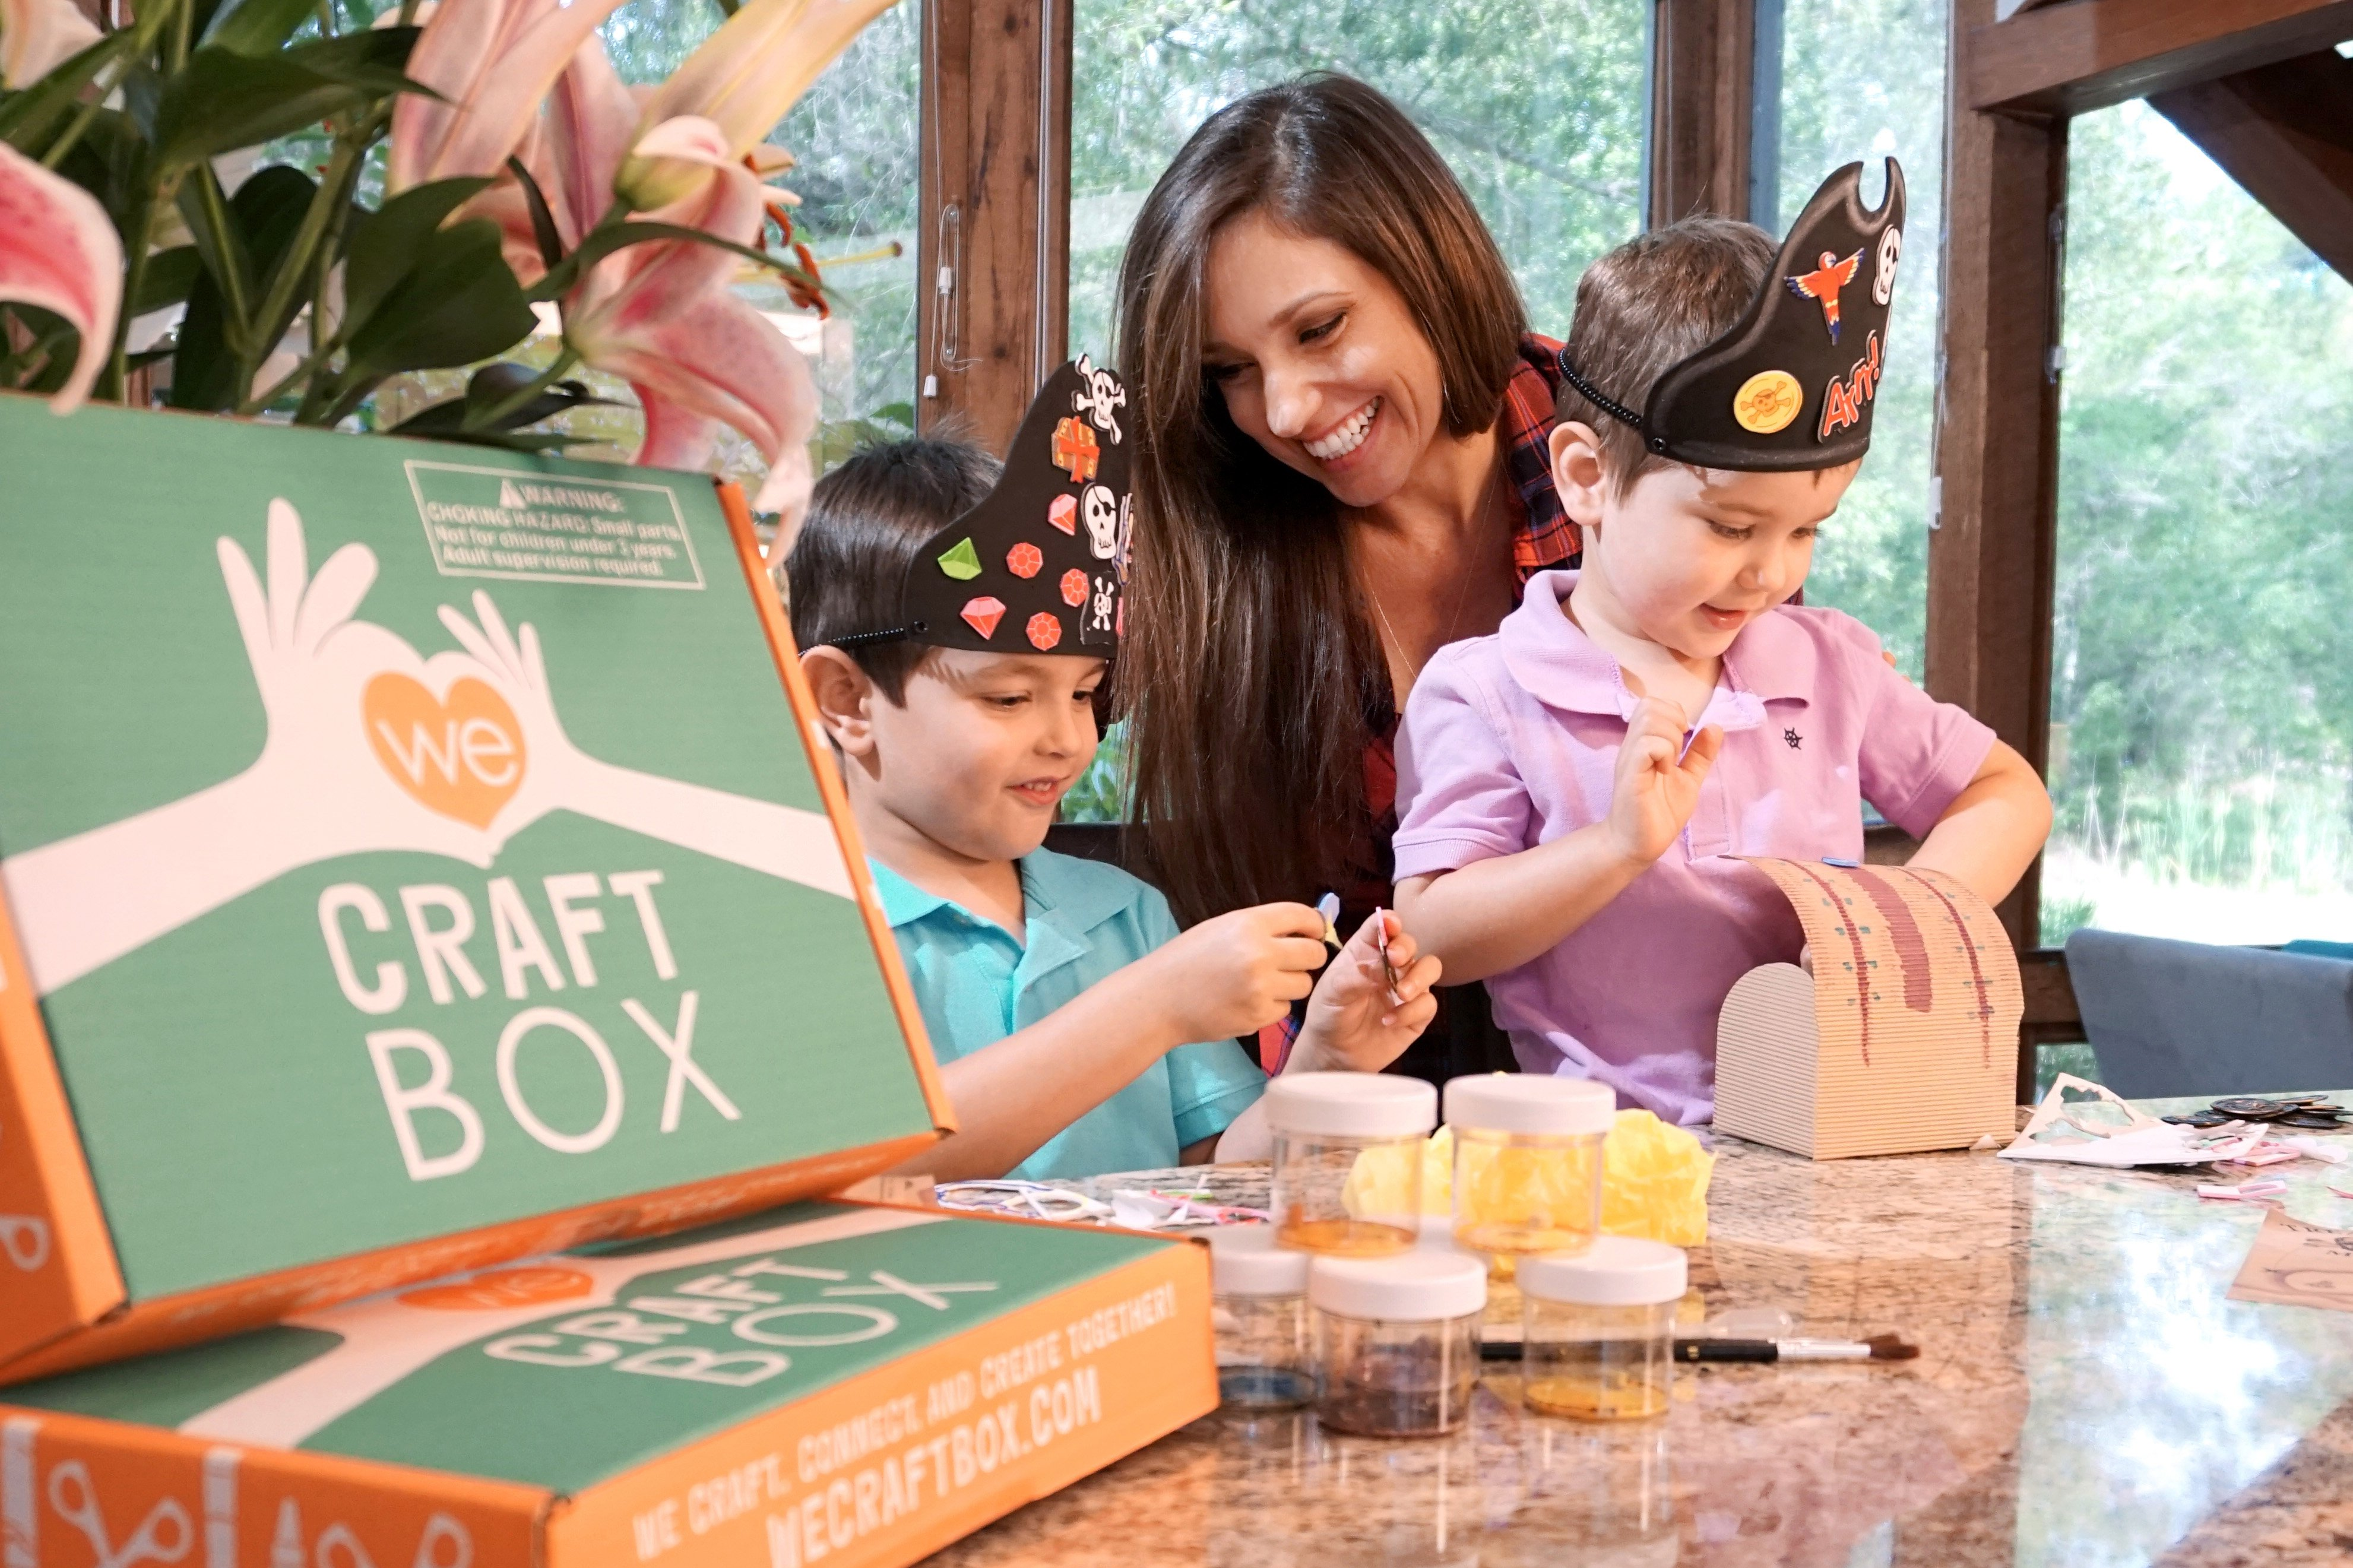 subscription boxes for kids we craft box